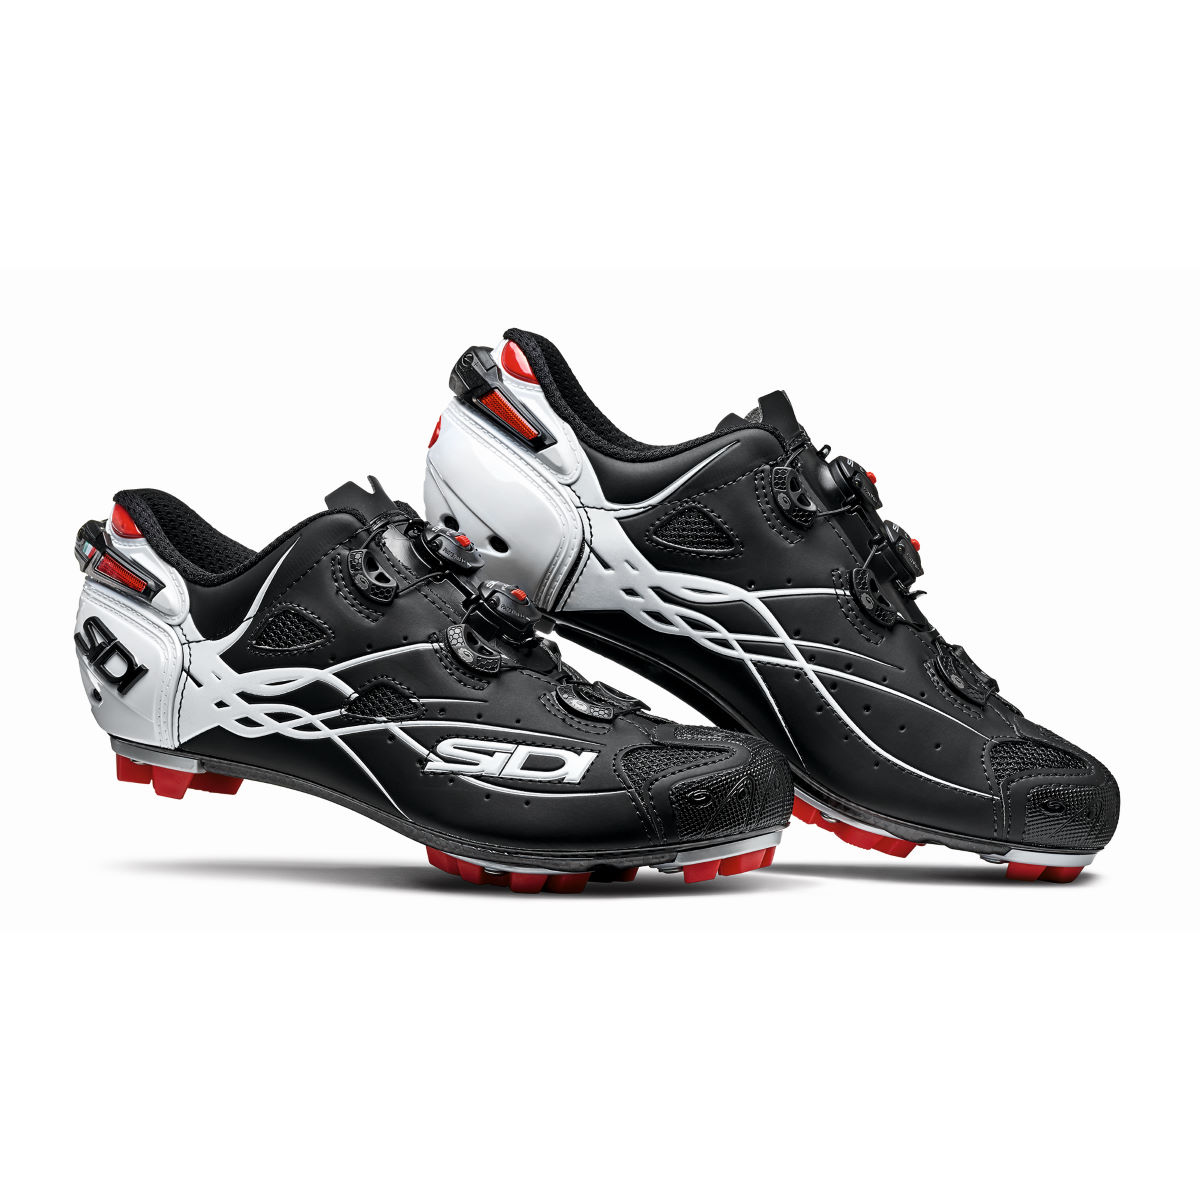 Chaussures VTT Sidi Tiger Carbon - EU 40 White - Red